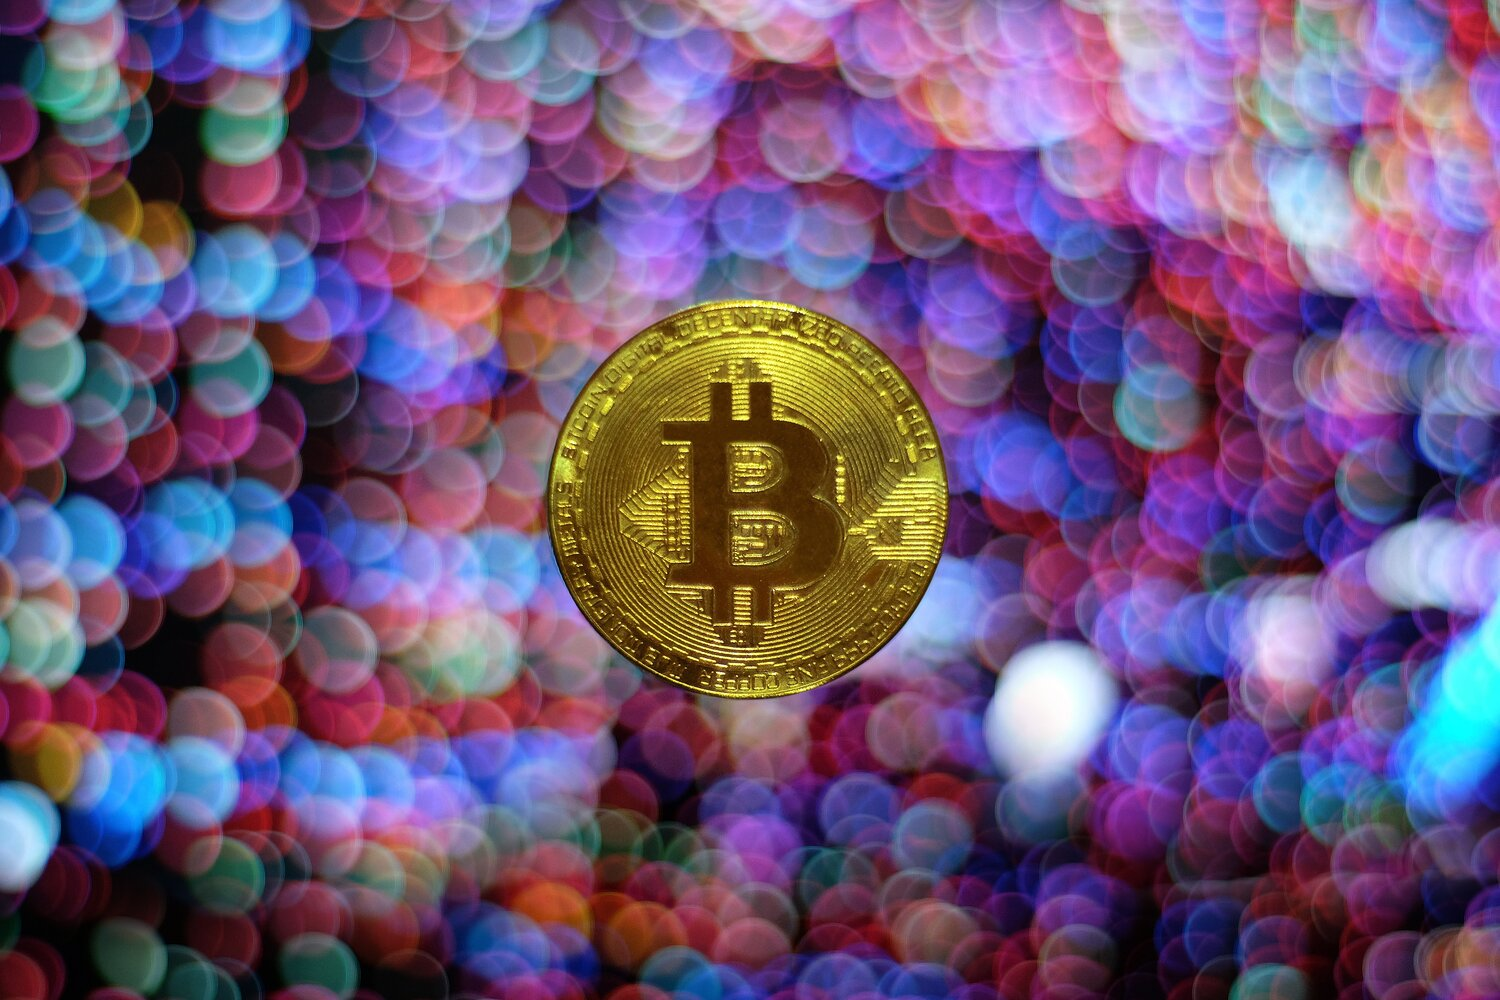 Playing at Bitcoin Casinos: What Are the Reasons for Such High Popularity?